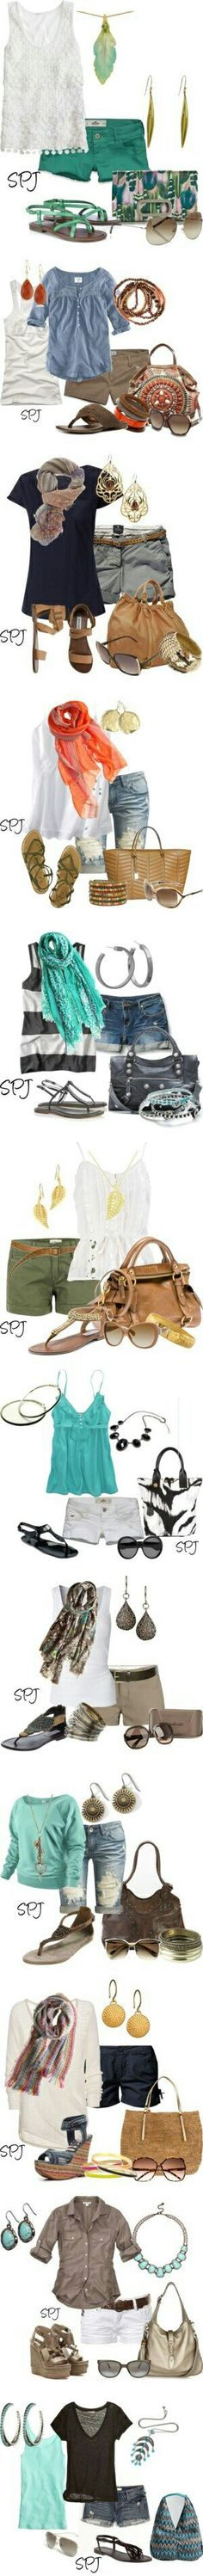 Find More at => http://feedproxy.google.com/~r/amazingoutfits/~3/OD9qPefukHQ/AmazingOutfits.page